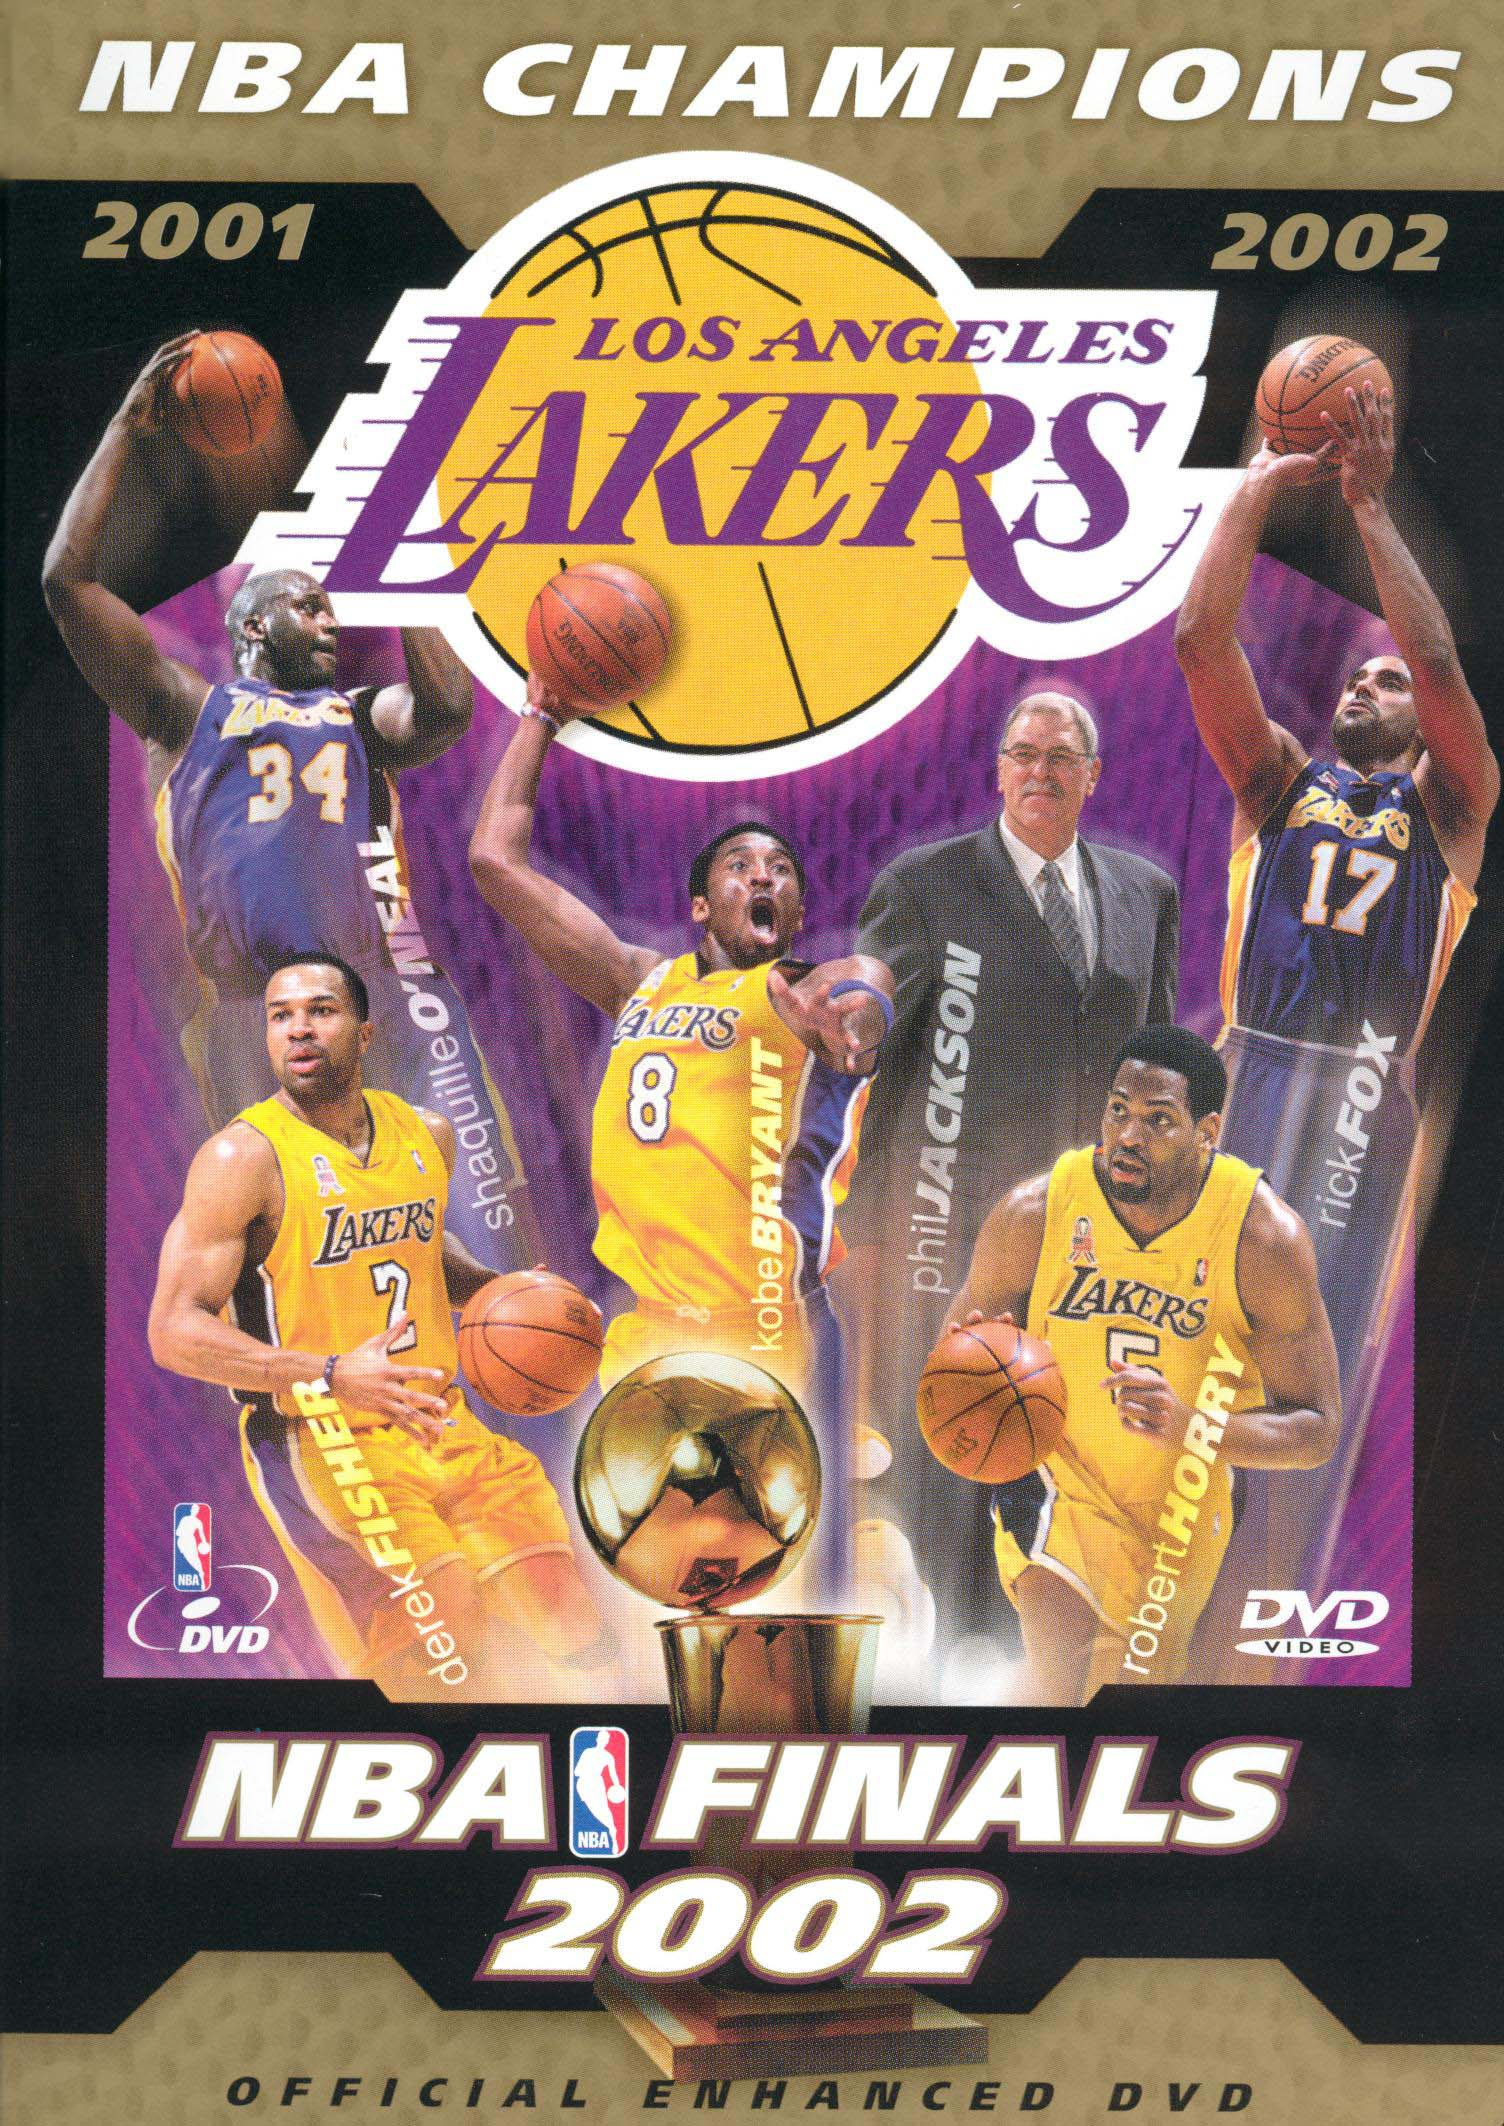 The Official 2002 NBA Championship: Los Angeles Lakers